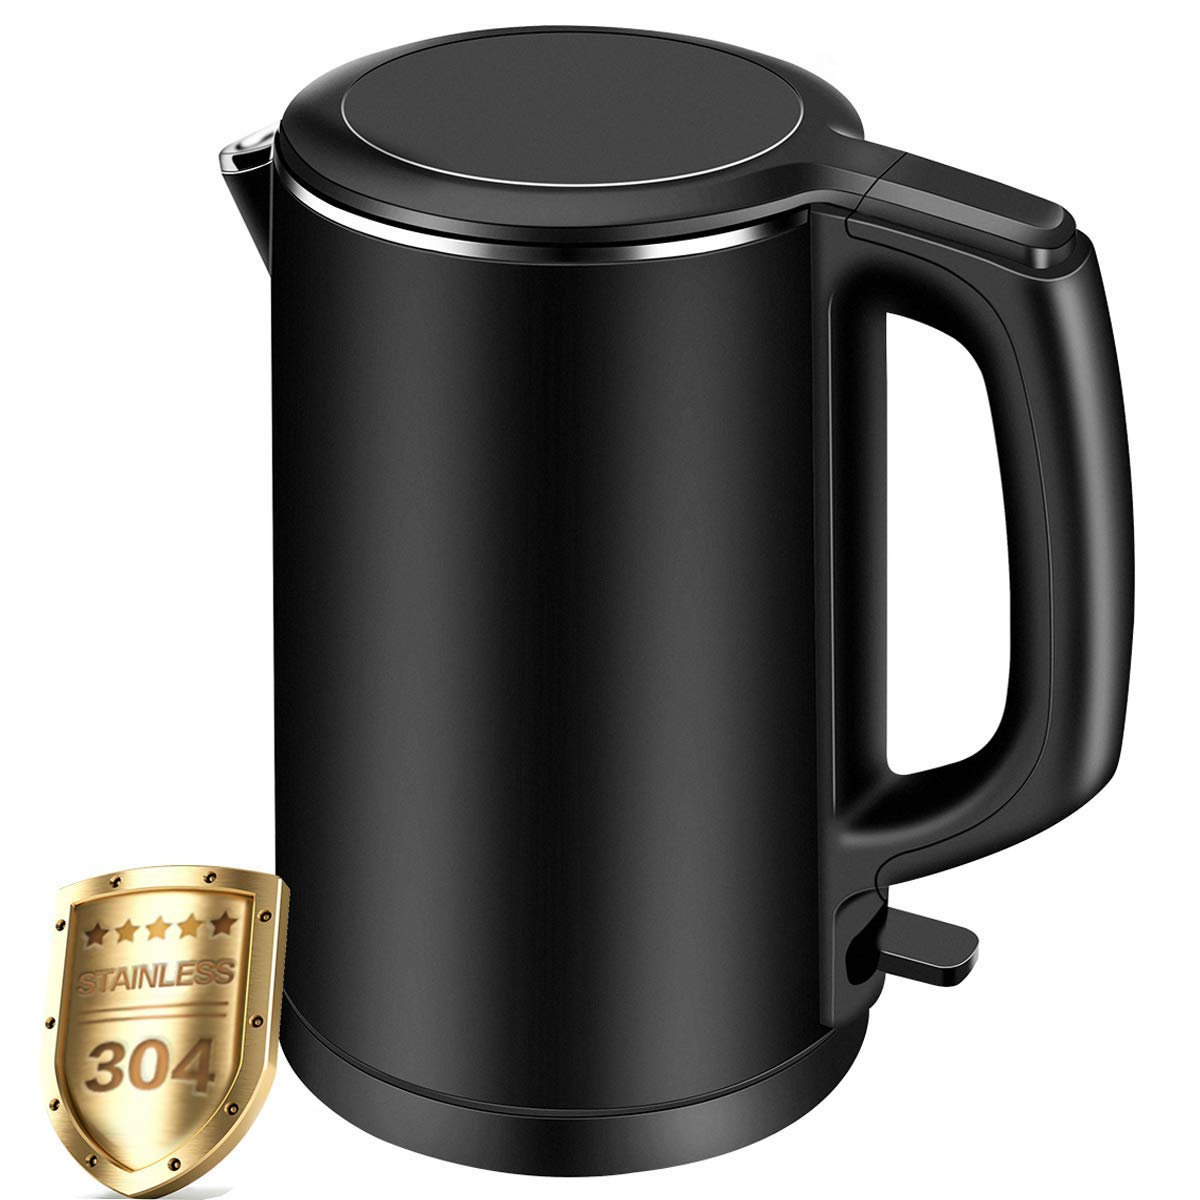 Electric Kettle, CUSIBOX 1.5L Double Wall 100% Stainless Steel Tea Kettle Cool Touch, 1500W Fast Boil Cordless Water Kettle with Auto Shut-Off & Boil Dry Protection